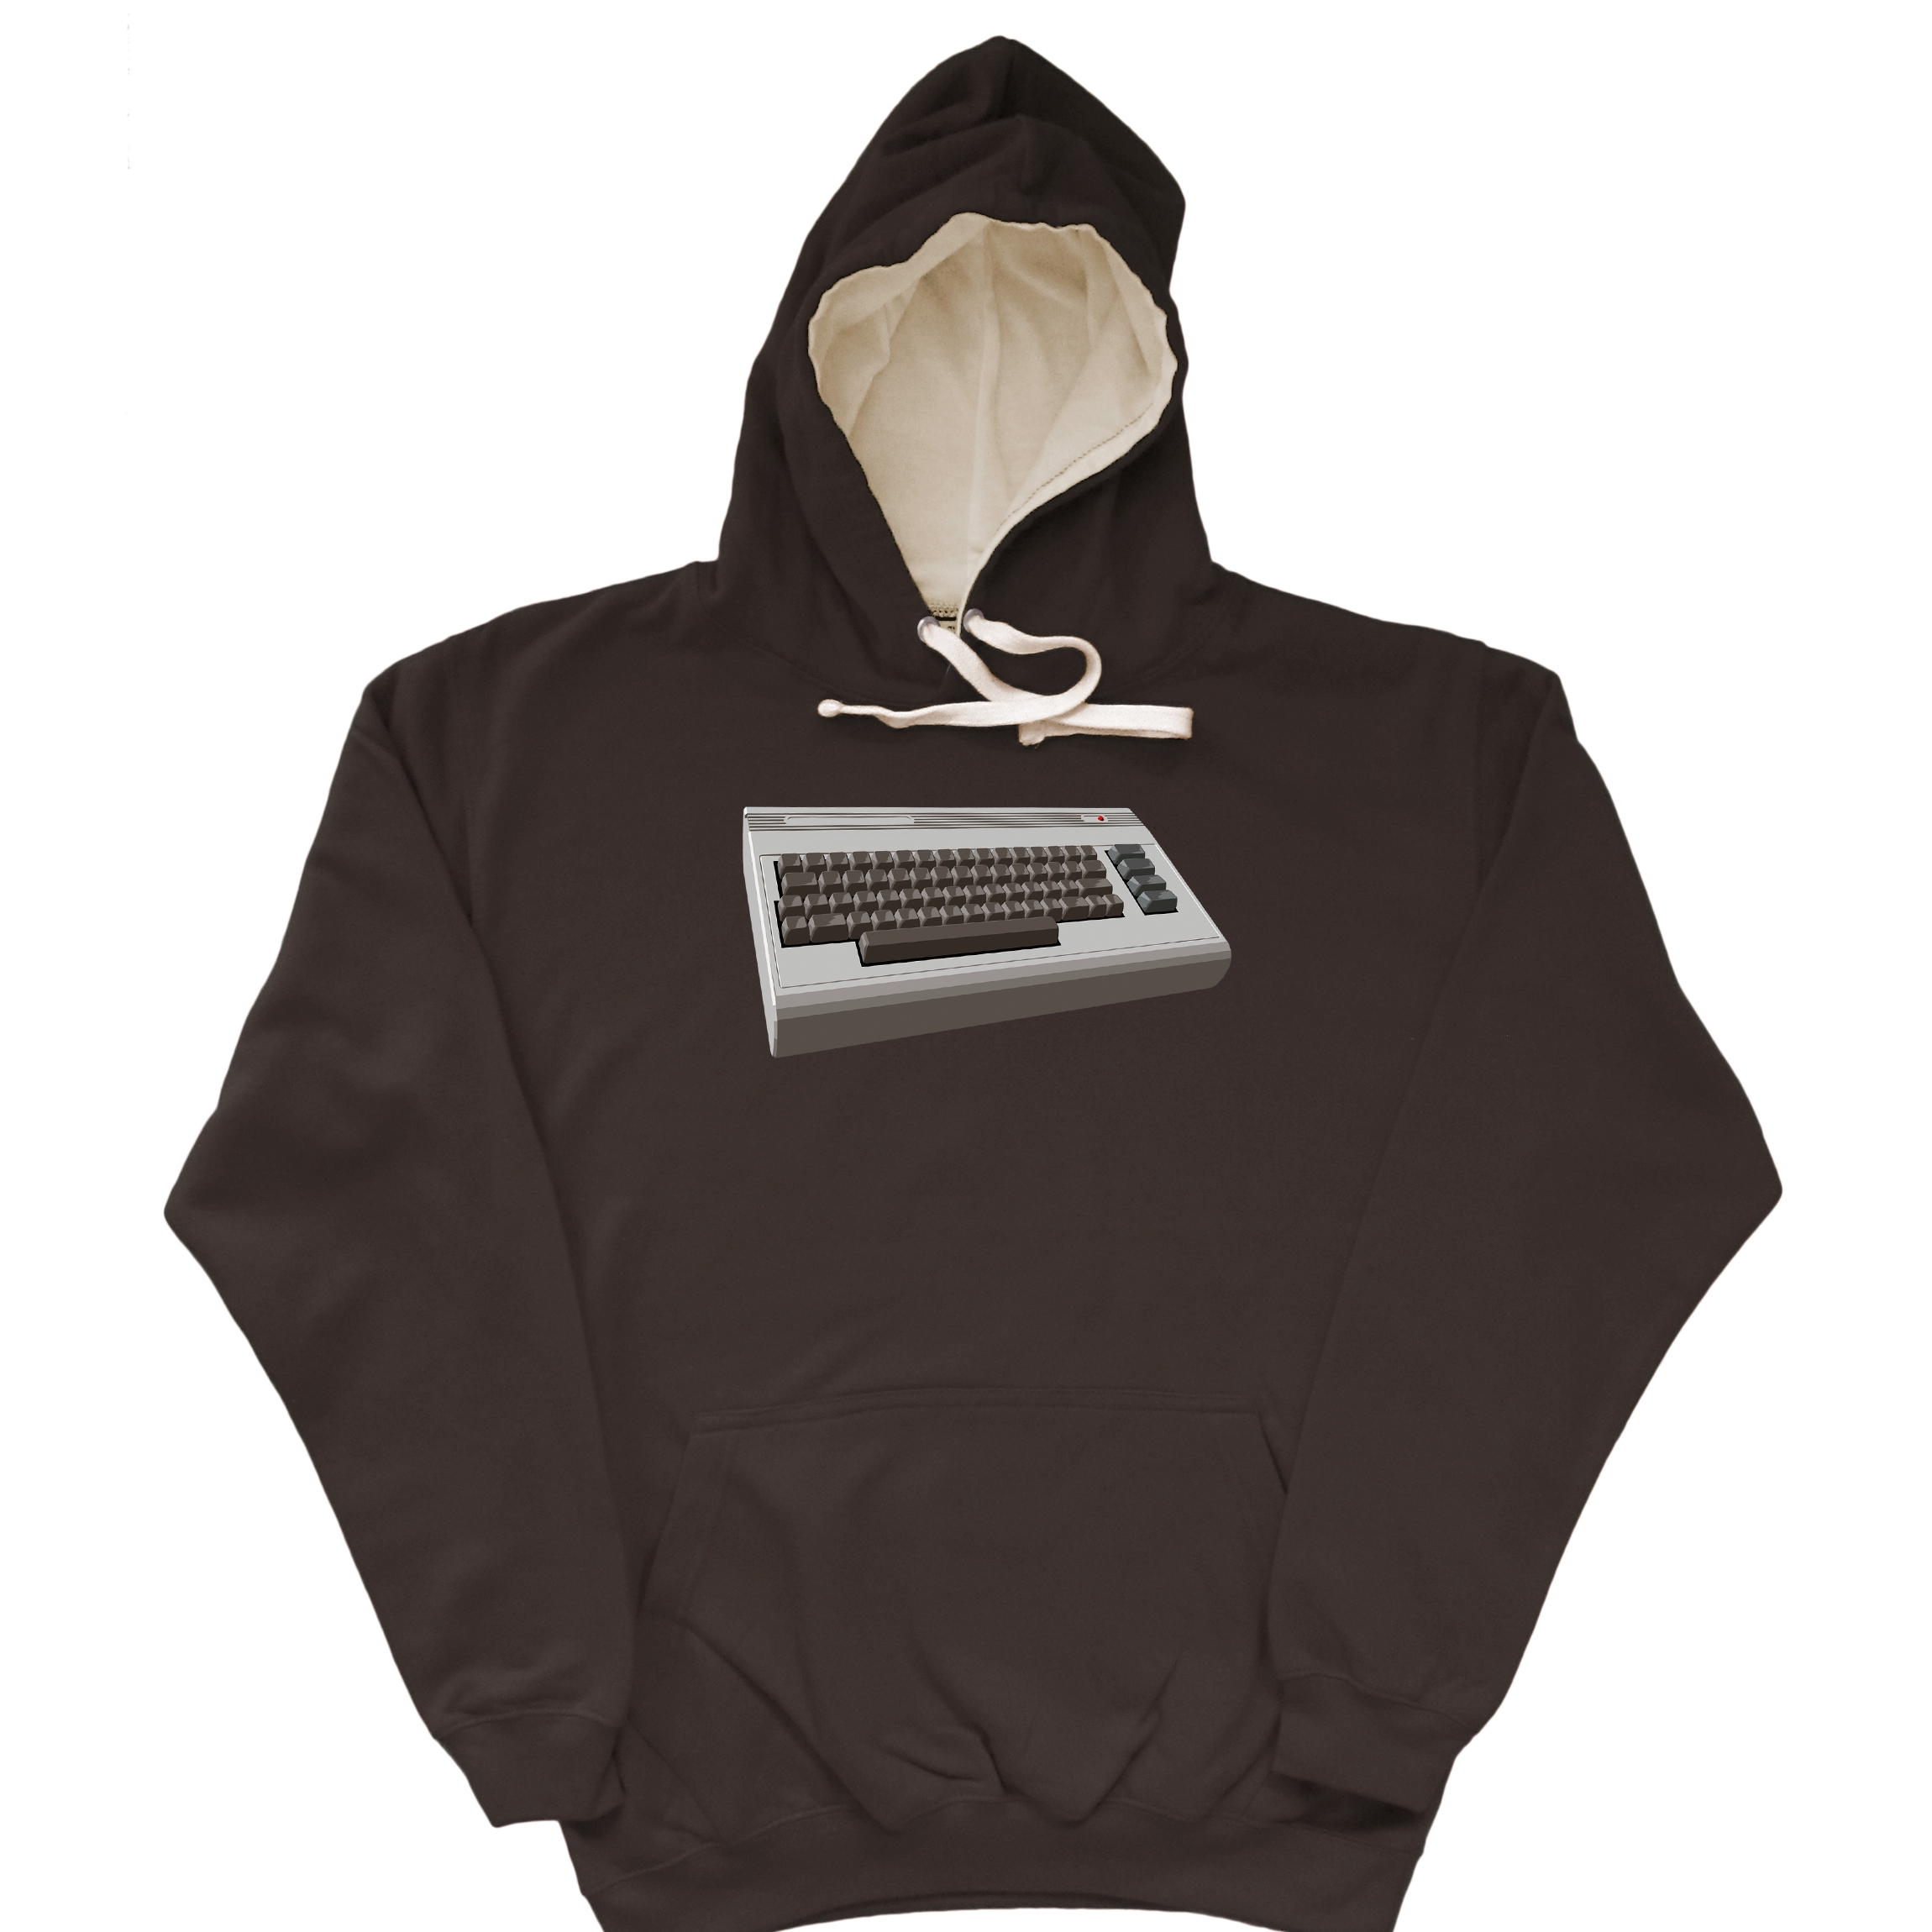 Photograph: Commodore 64 Hoodie